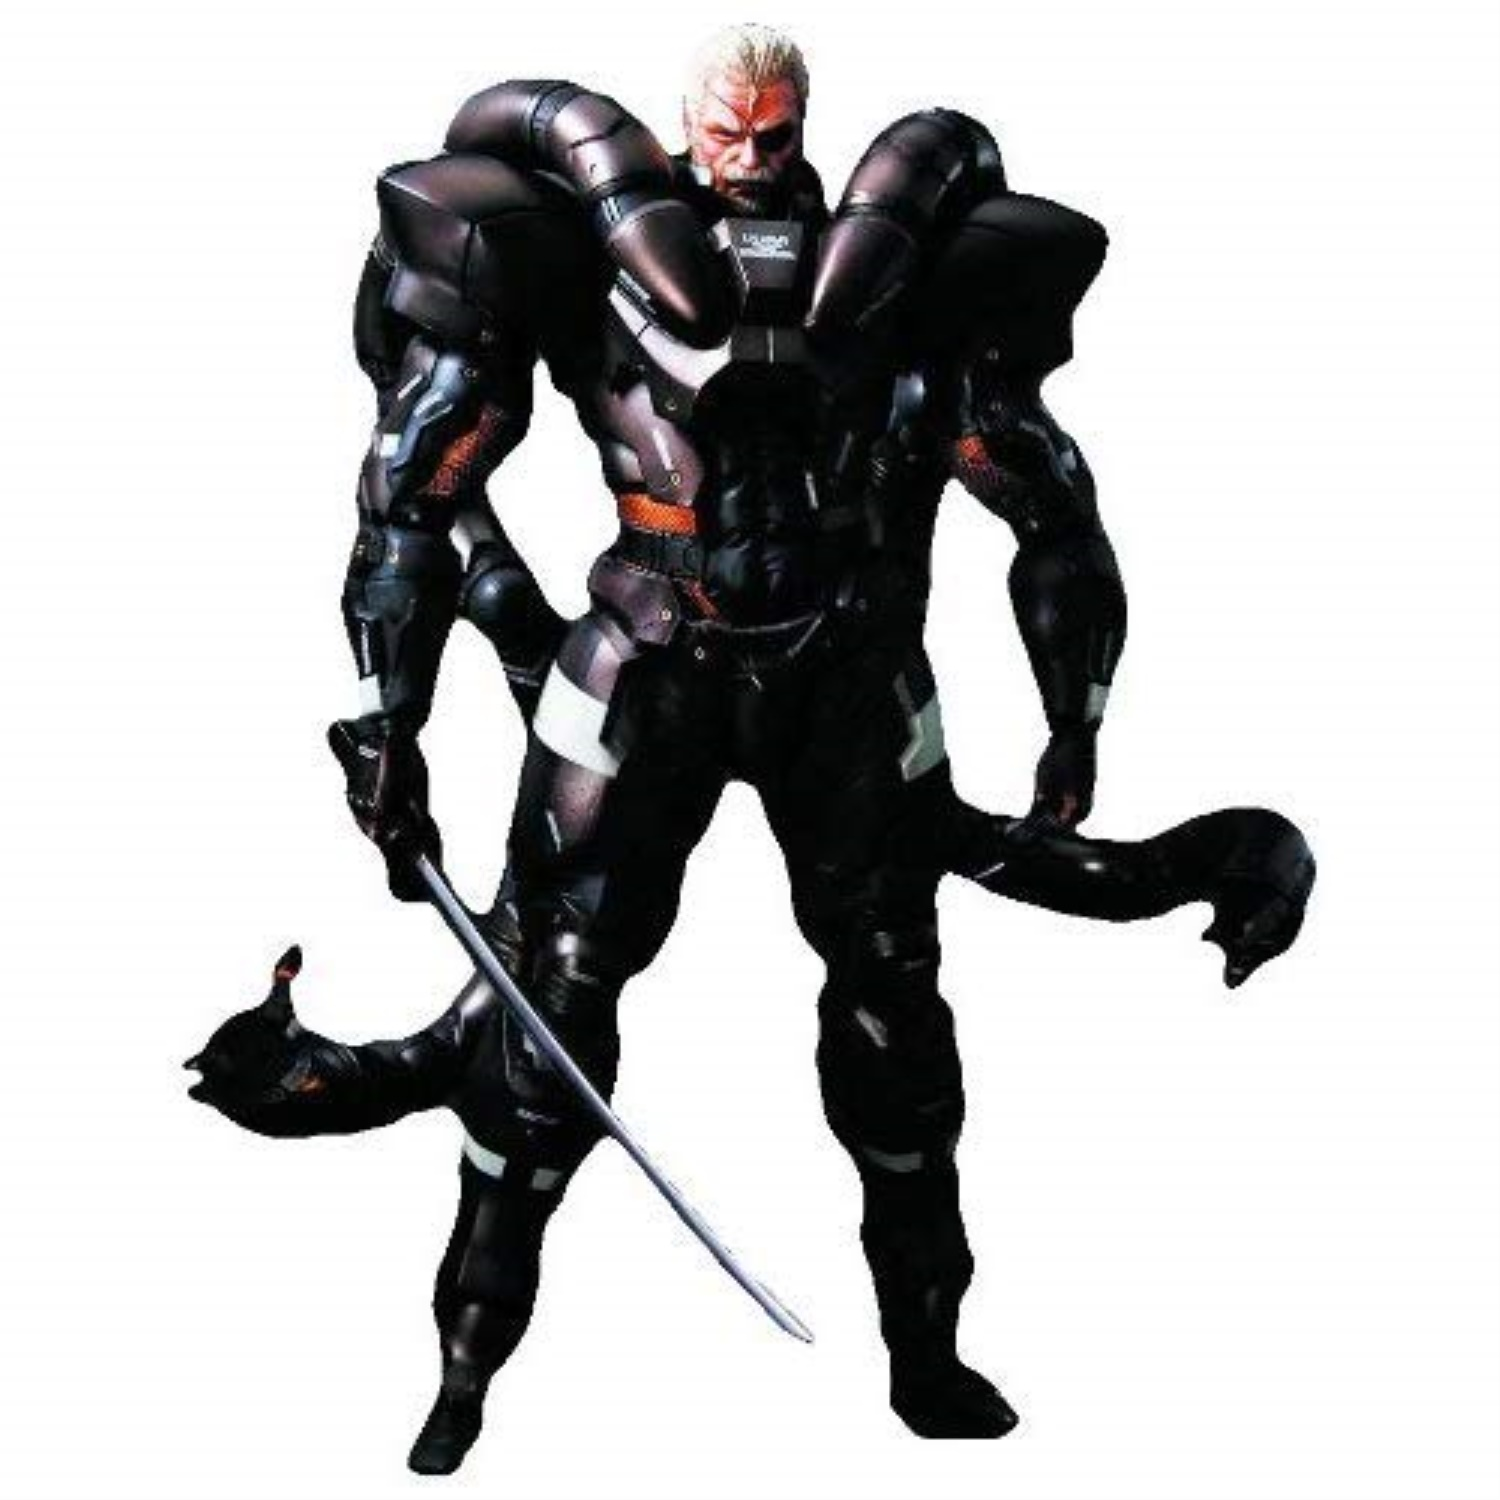 Details About Square Enix Metal Gear Solid 2 Play Arts Kai Solidus Snake Action Figure